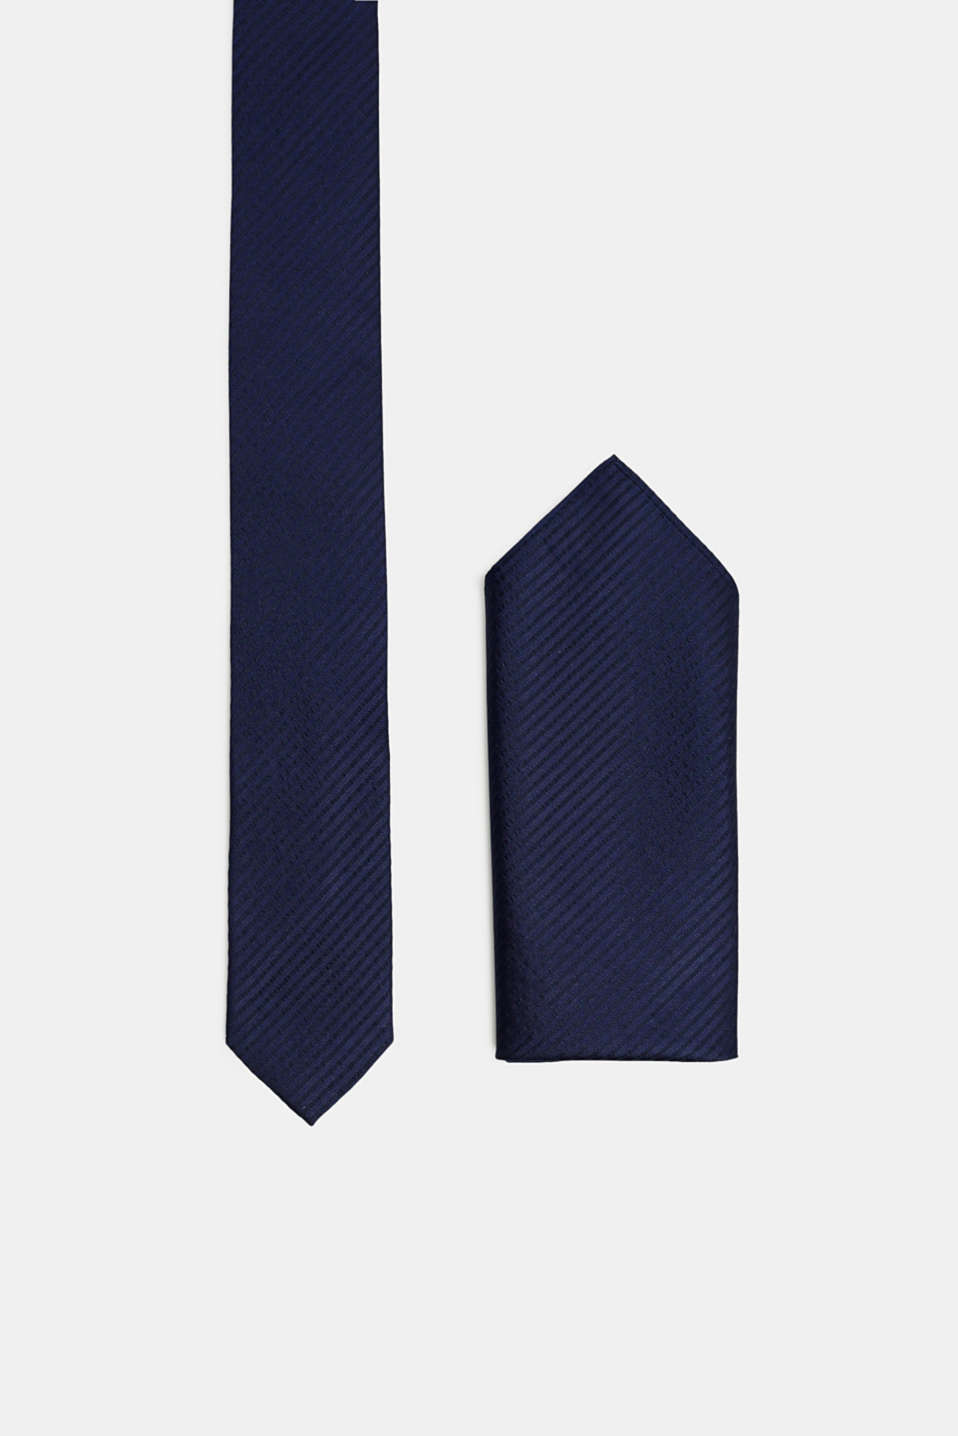 Esprit - Tie and pocket square set